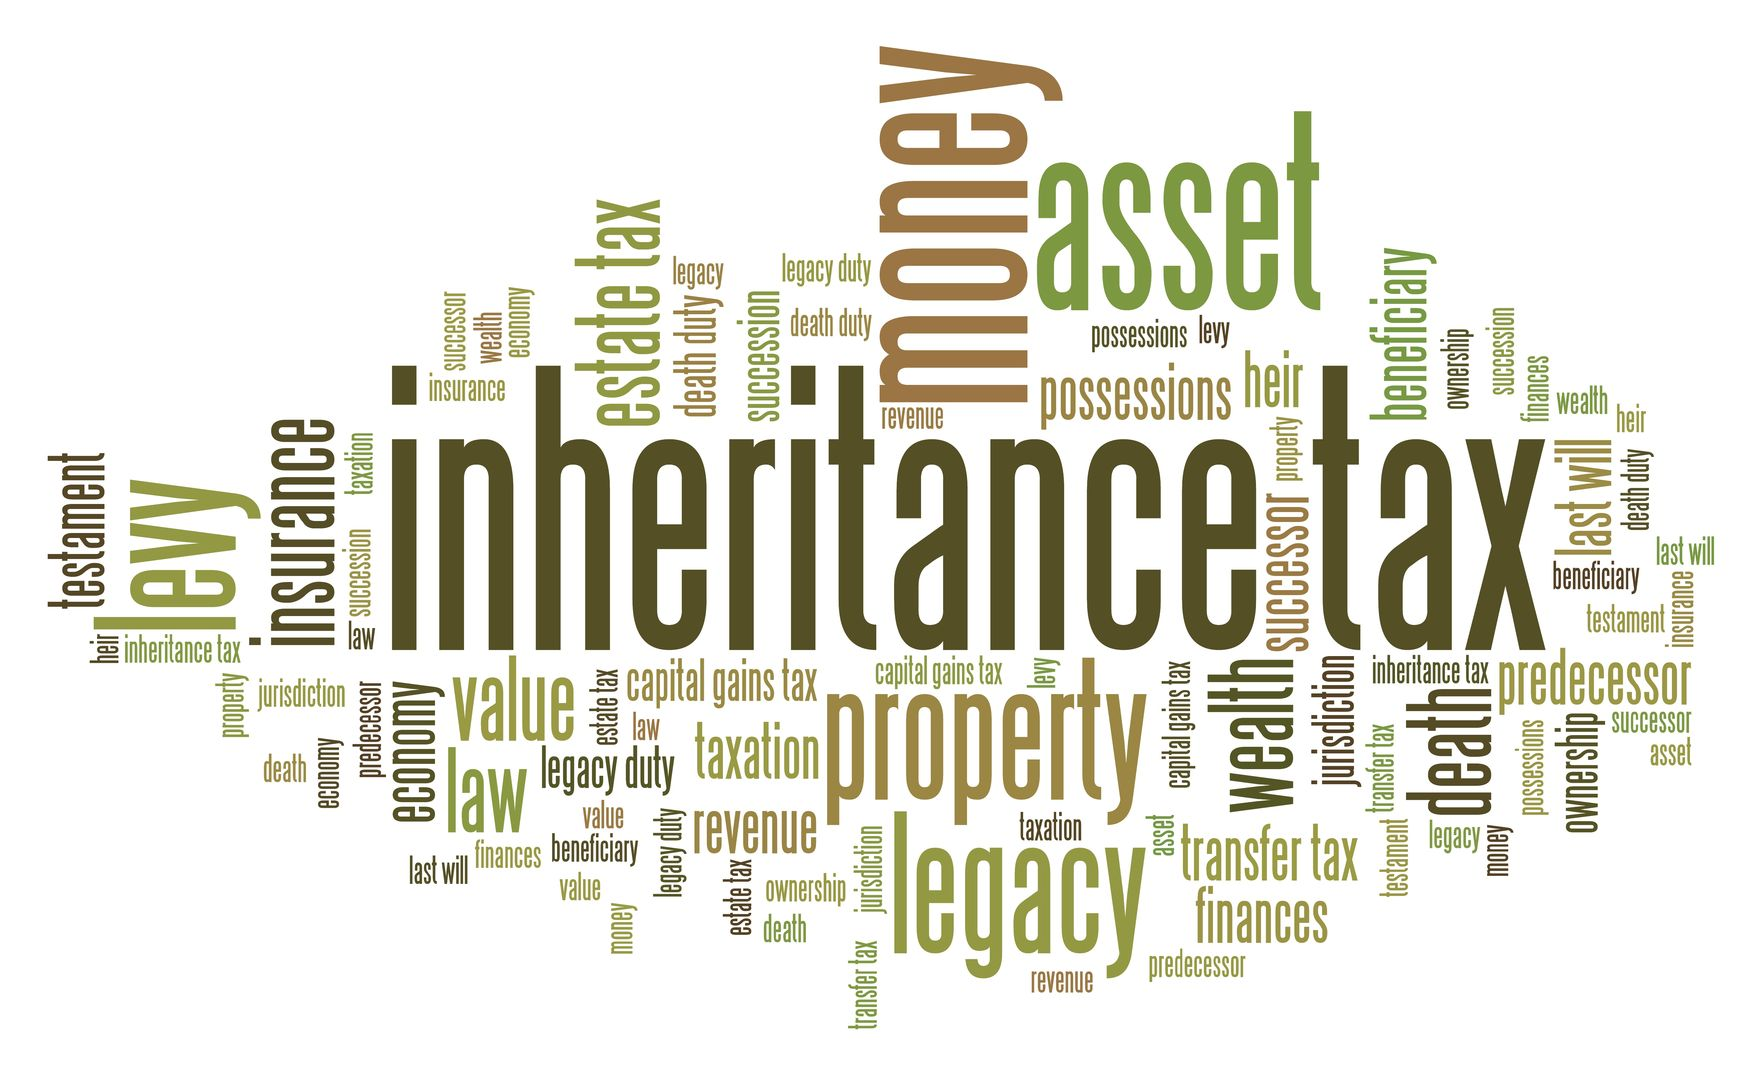 40181177 - Inheritance Tax - Personal Finance Issues And Concepts Tag Cloud Illustration. Word Cloud Collage Concept.